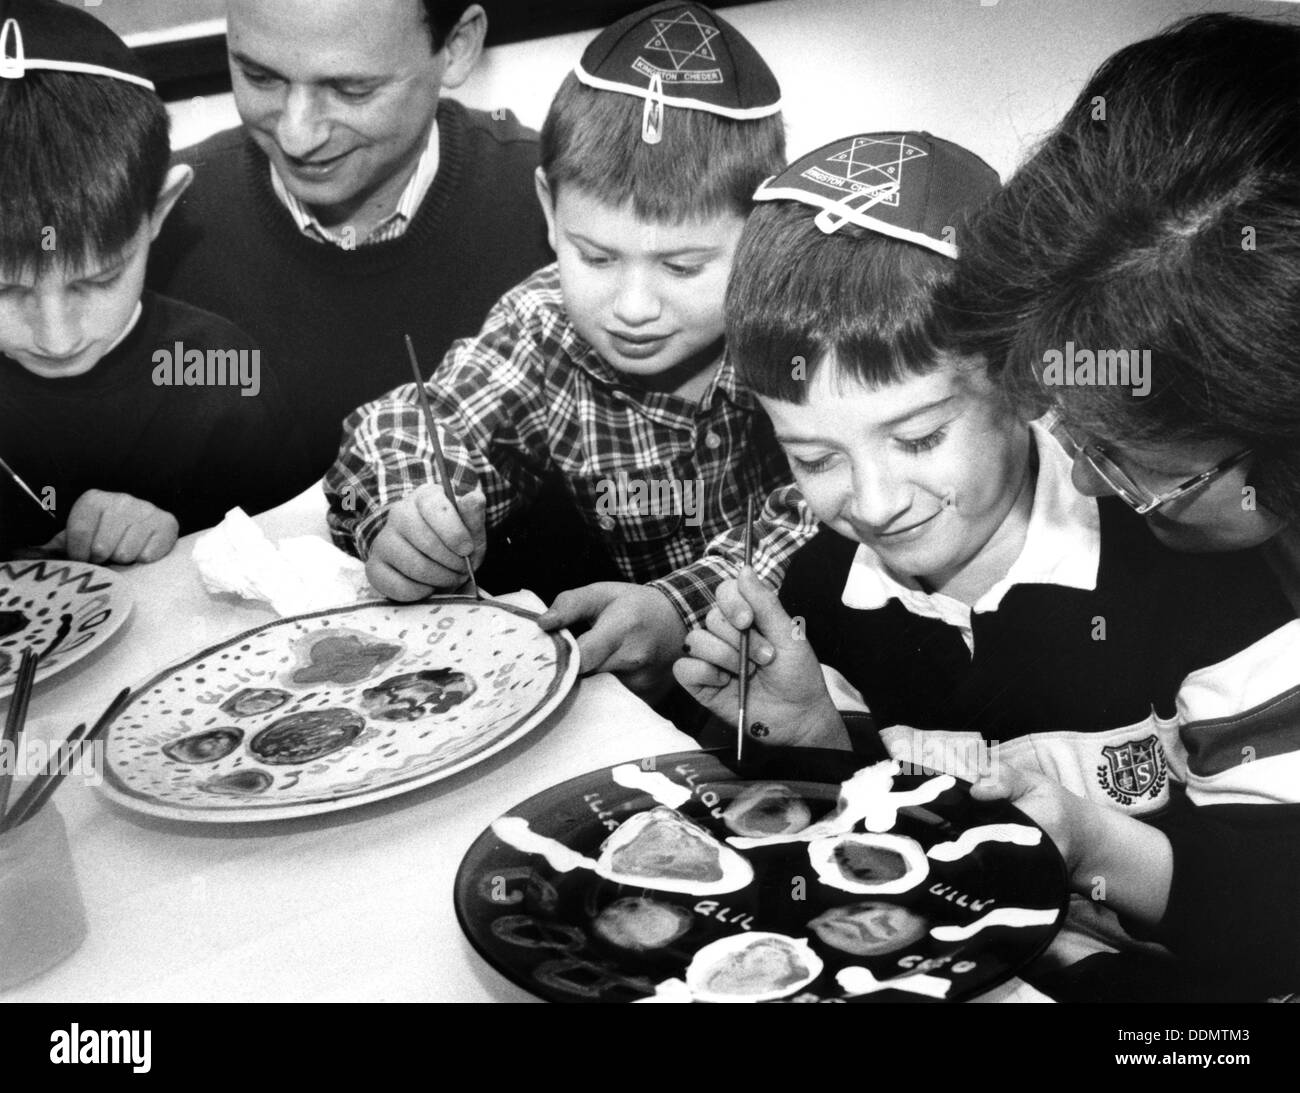 Children at Passover, Kingston, London, 29 March 1998. - Stock Image